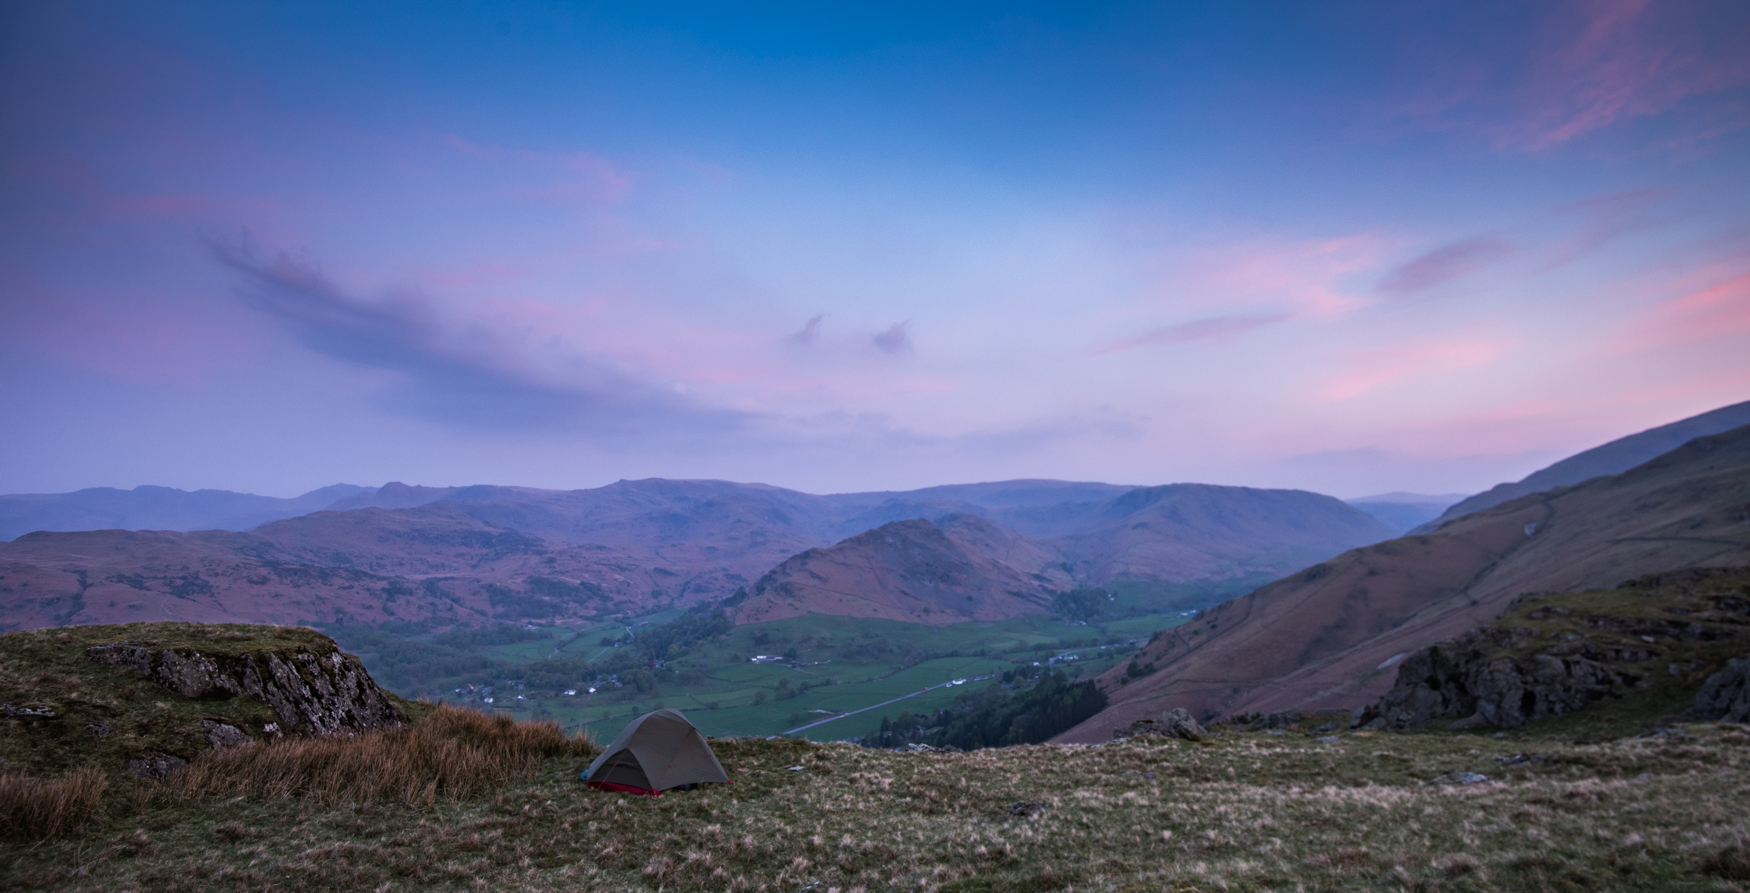 Not a bad place to take in the dawn arriving in the Grasmere Valley.